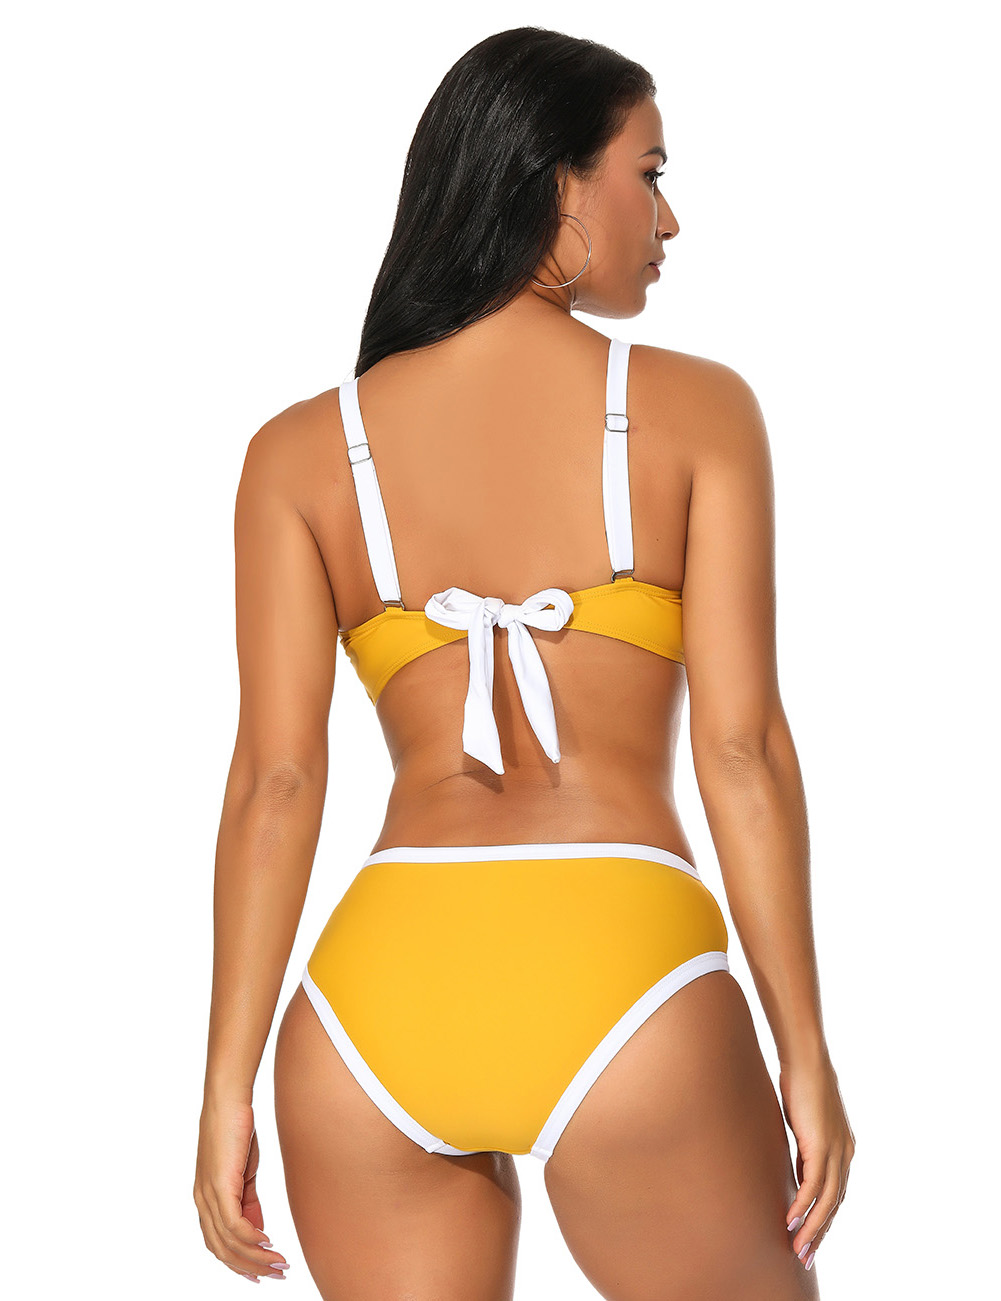 //cdn.affectcloud.com/hexinfashion/upload/imgs/Swimwear/Two_Piece_Swimsuit/F180082-YE5/F180082-YE5-201911055dc11a3a1078d.jpg